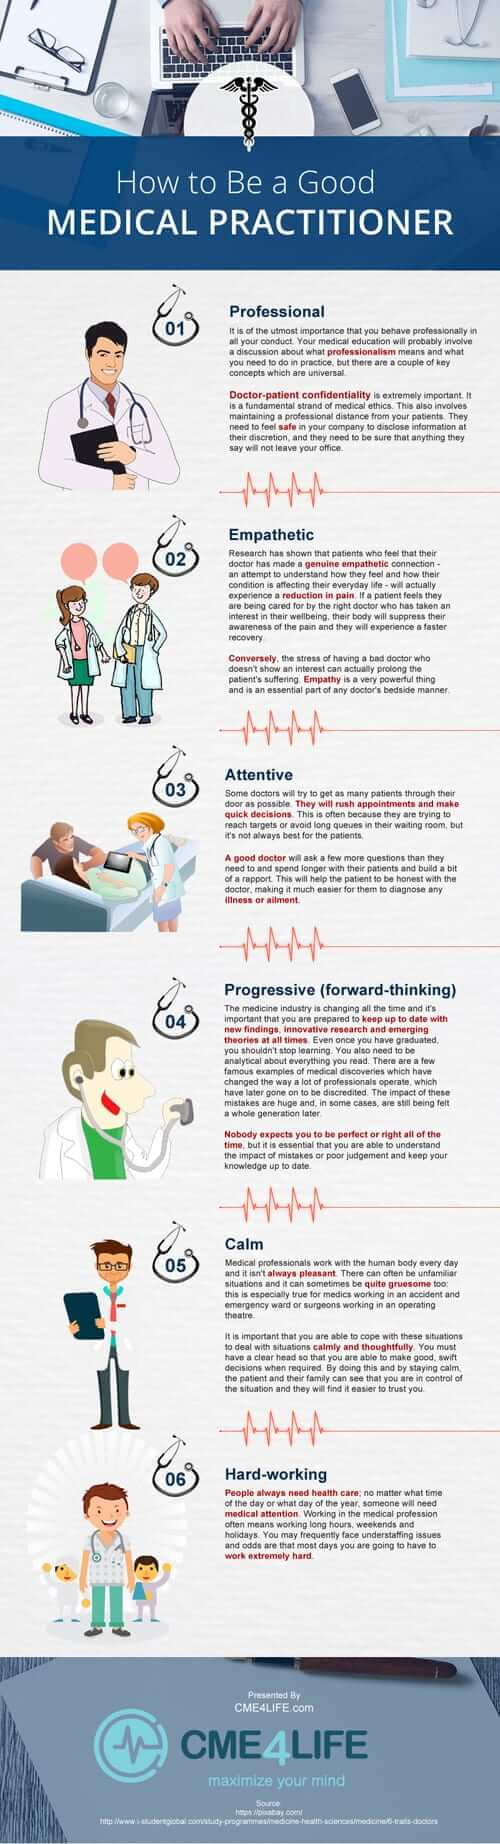 How to Be a Good Medical Practitioner [Infographic]